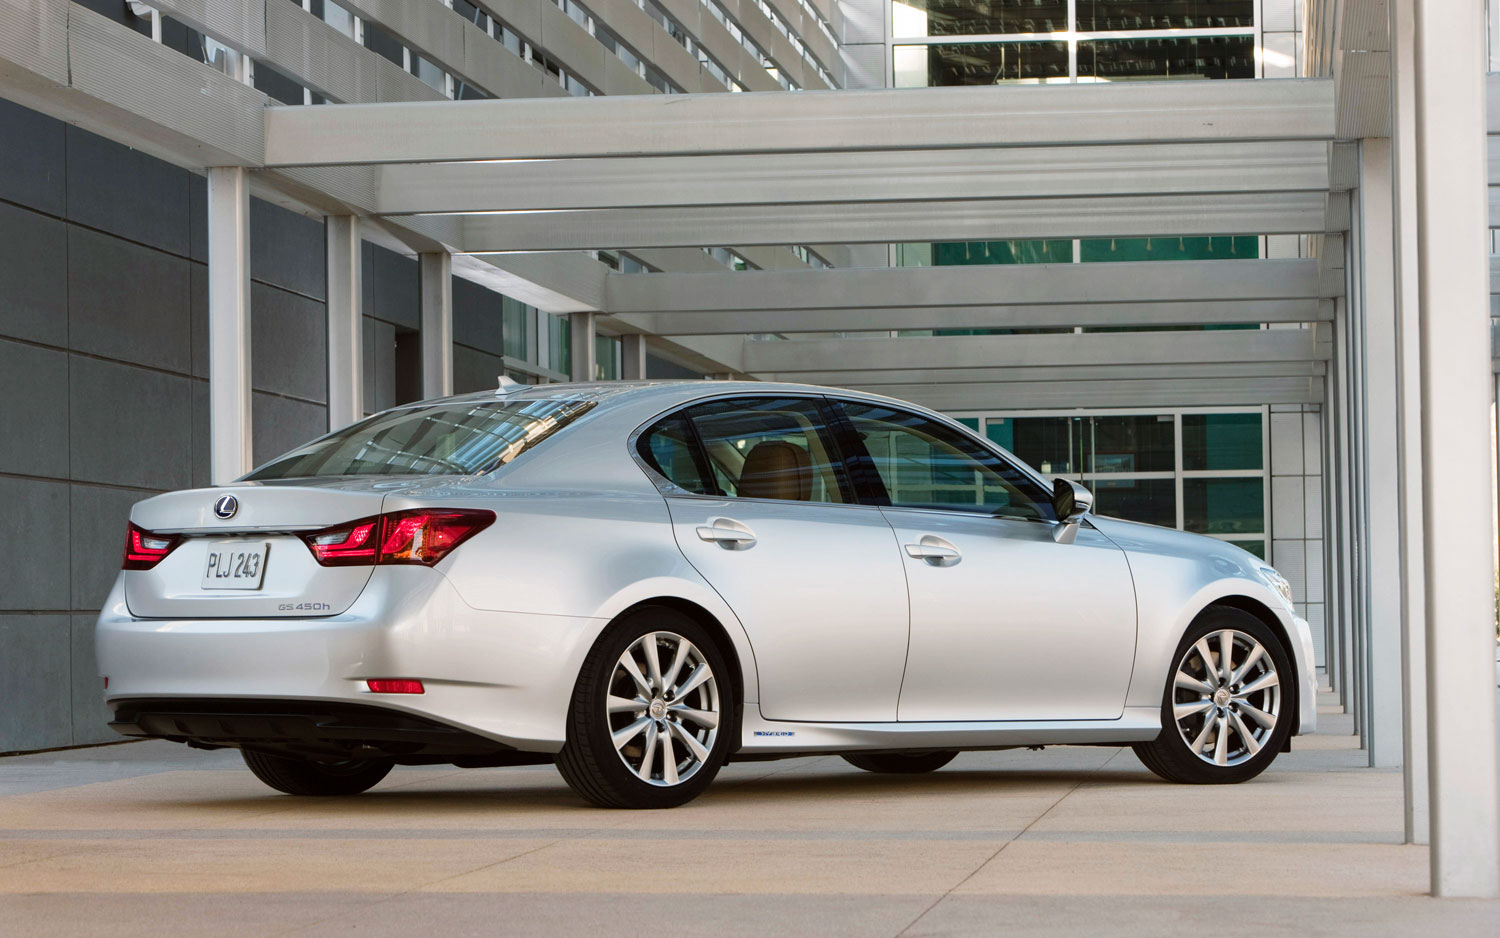 2013 lexus gs 450h price remains 59 825 rx 350 f sport is line priced. Black Bedroom Furniture Sets. Home Design Ideas